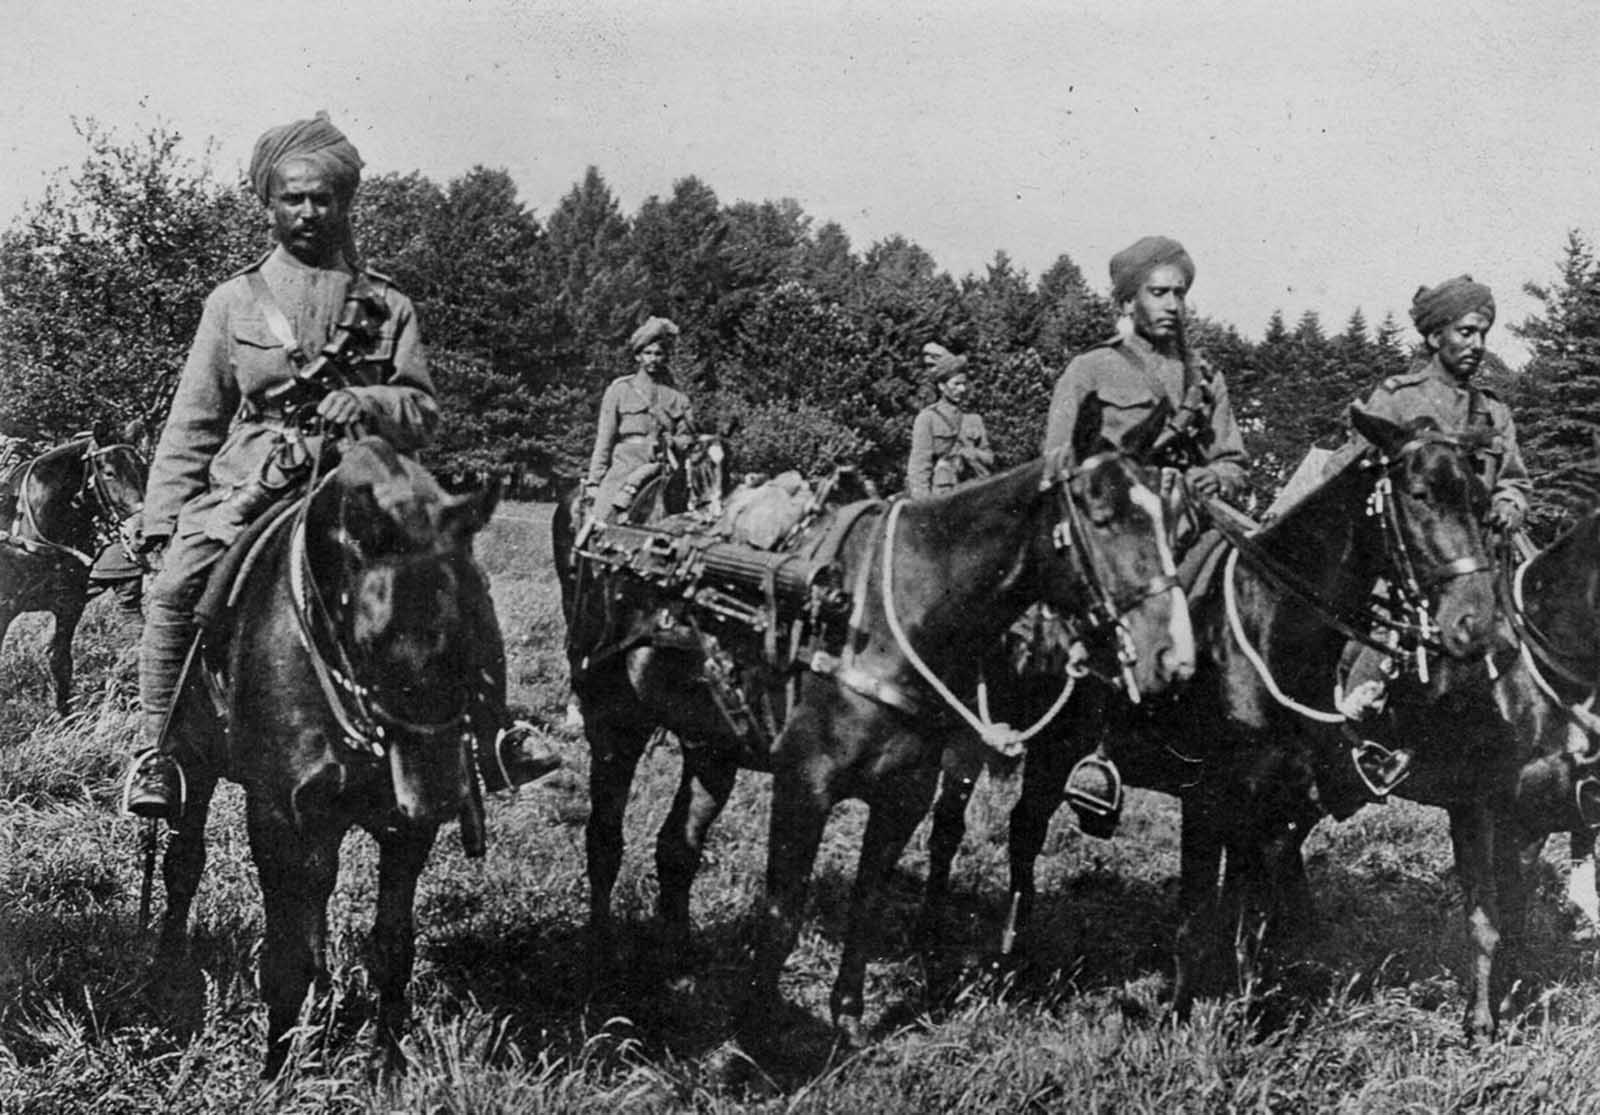 Indian cavalry of the British army. 1916.